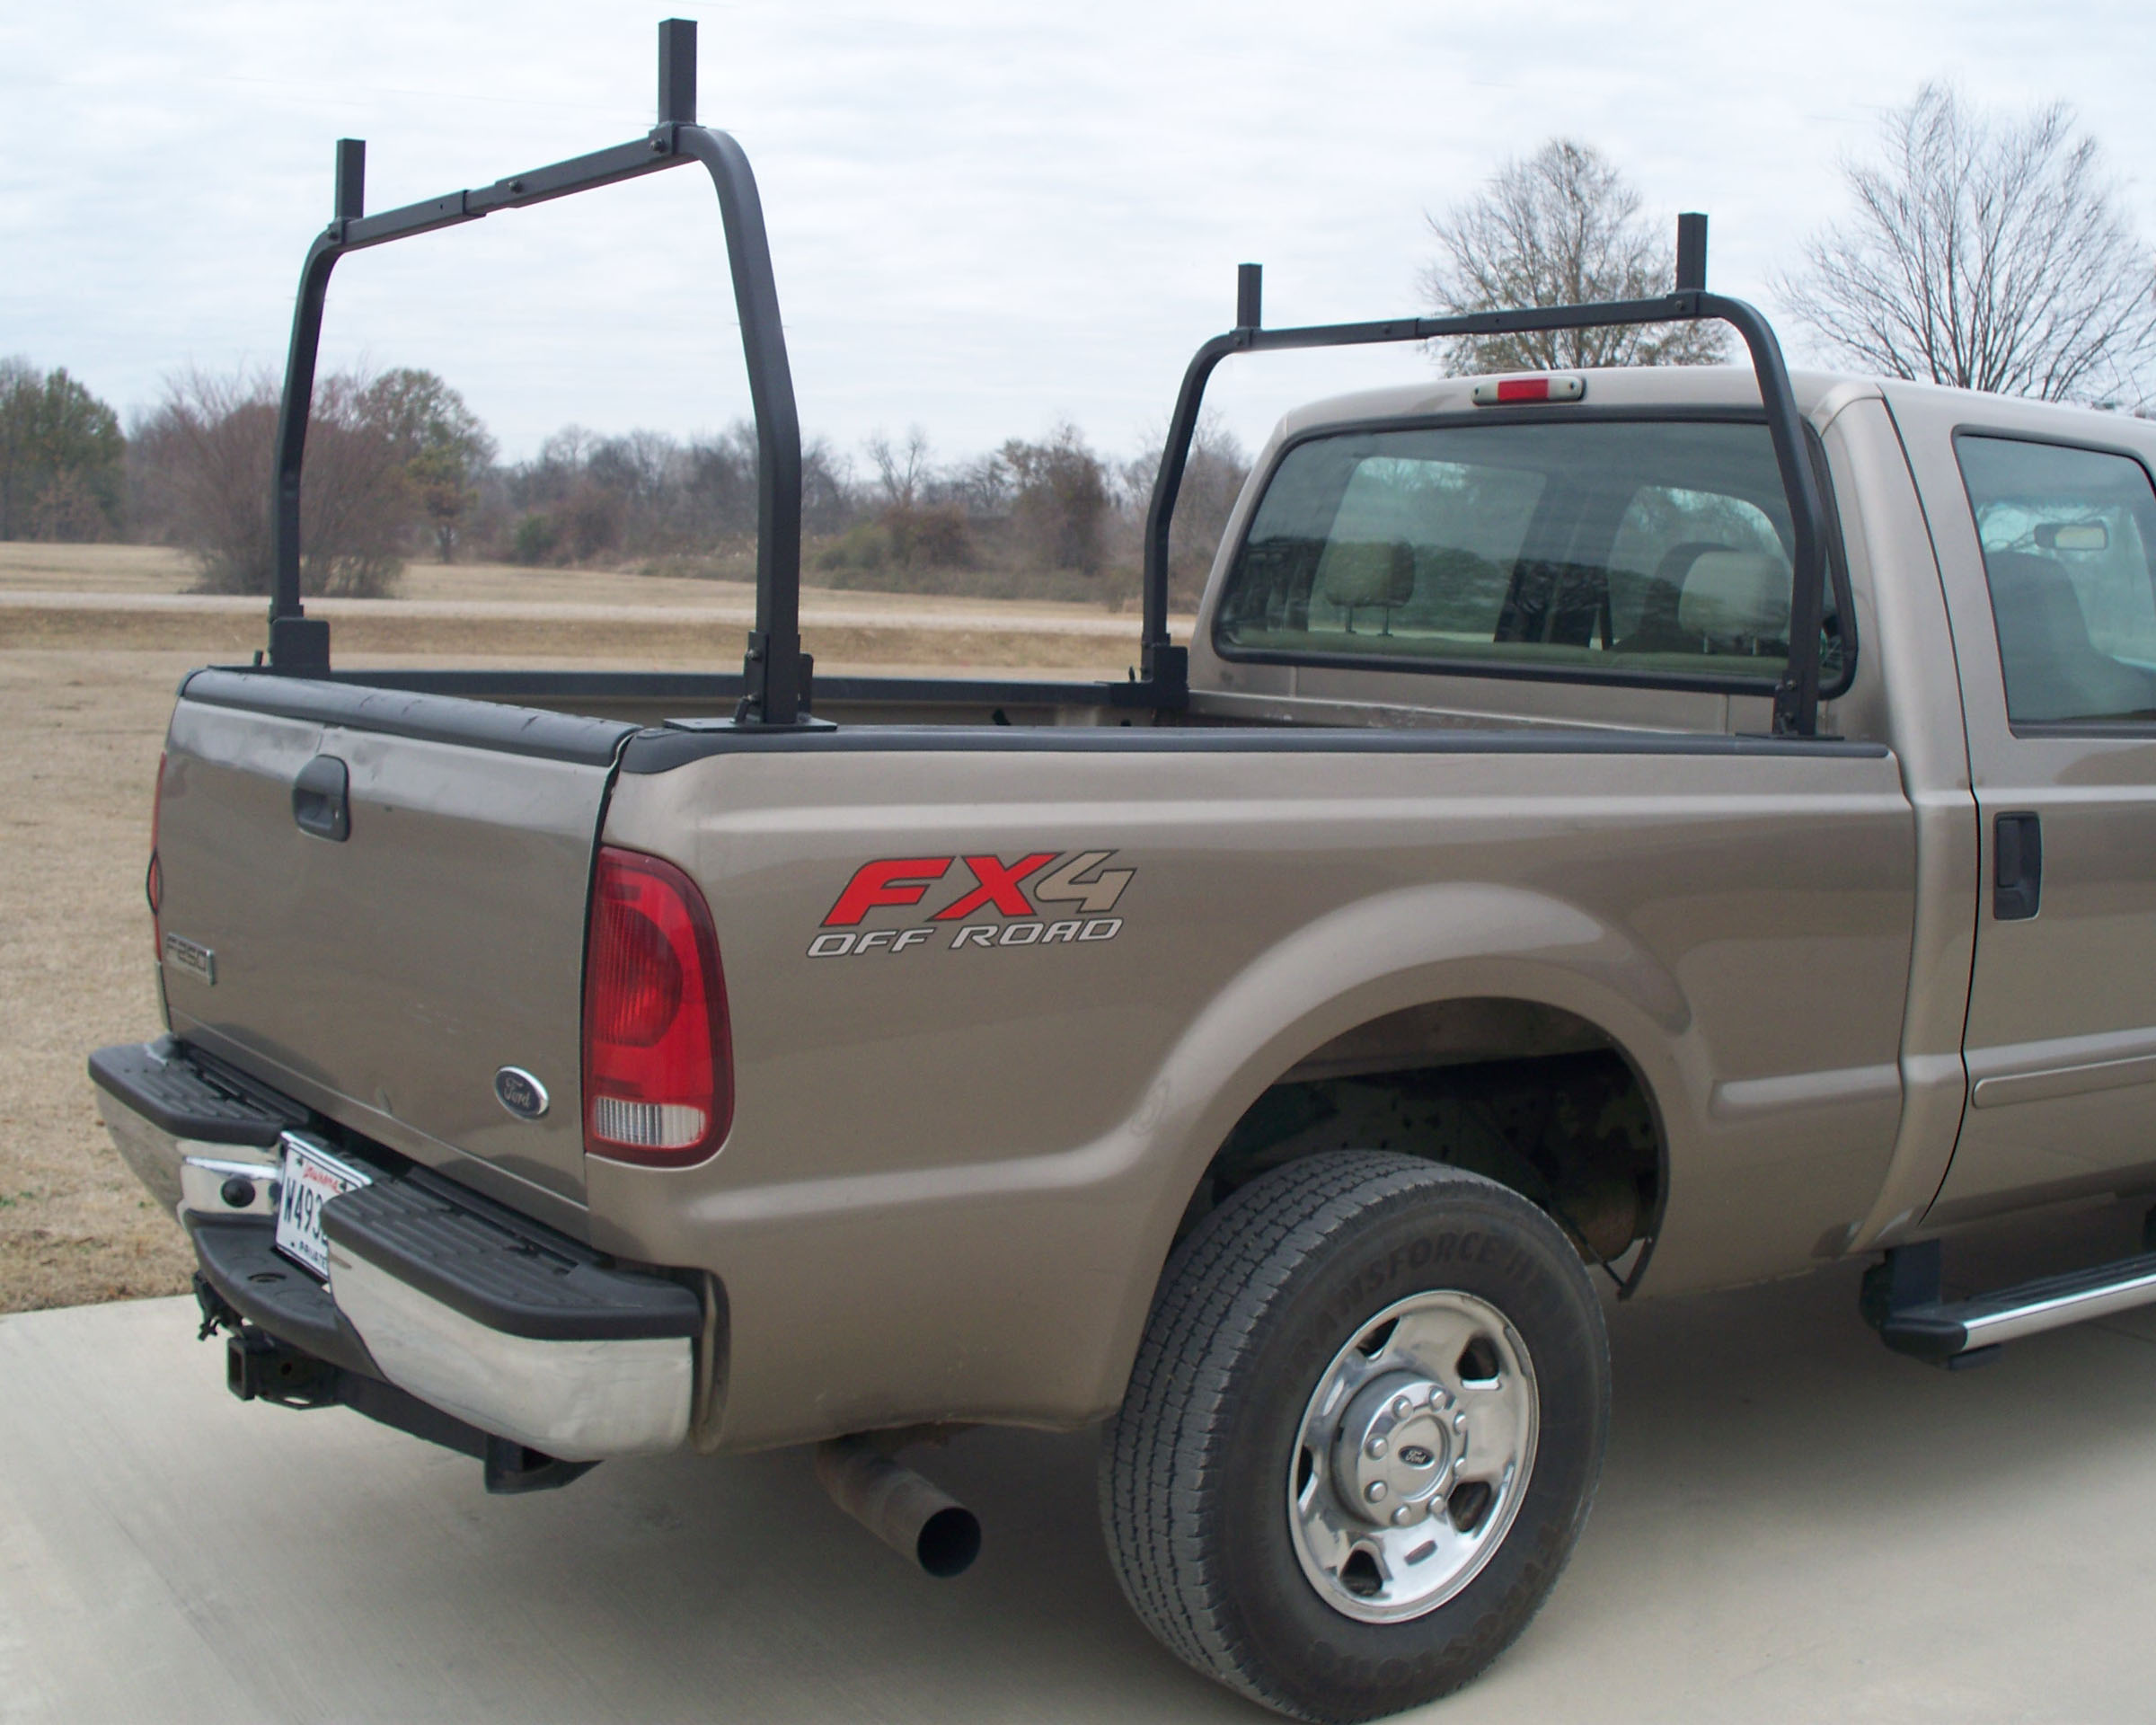 Pickup Ladder Rack Cosmecol